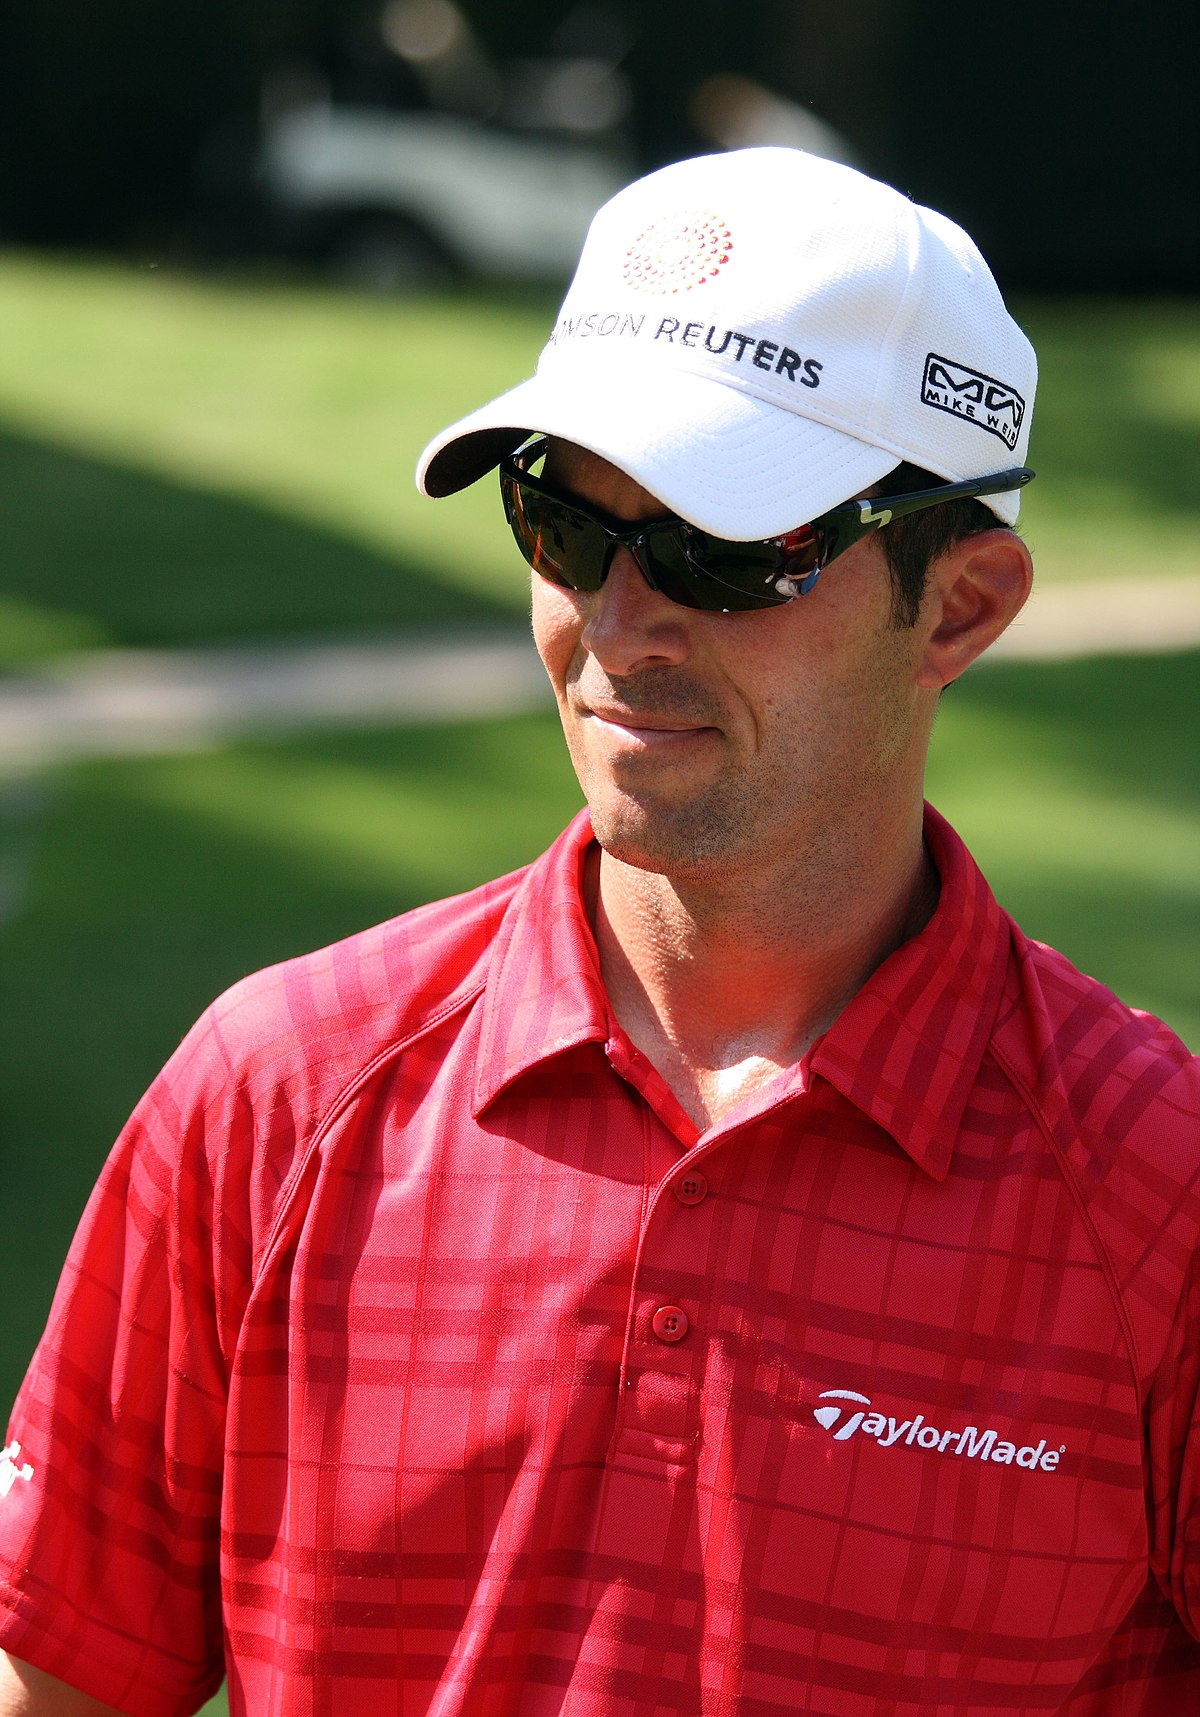 Mike Weir Pga Tour